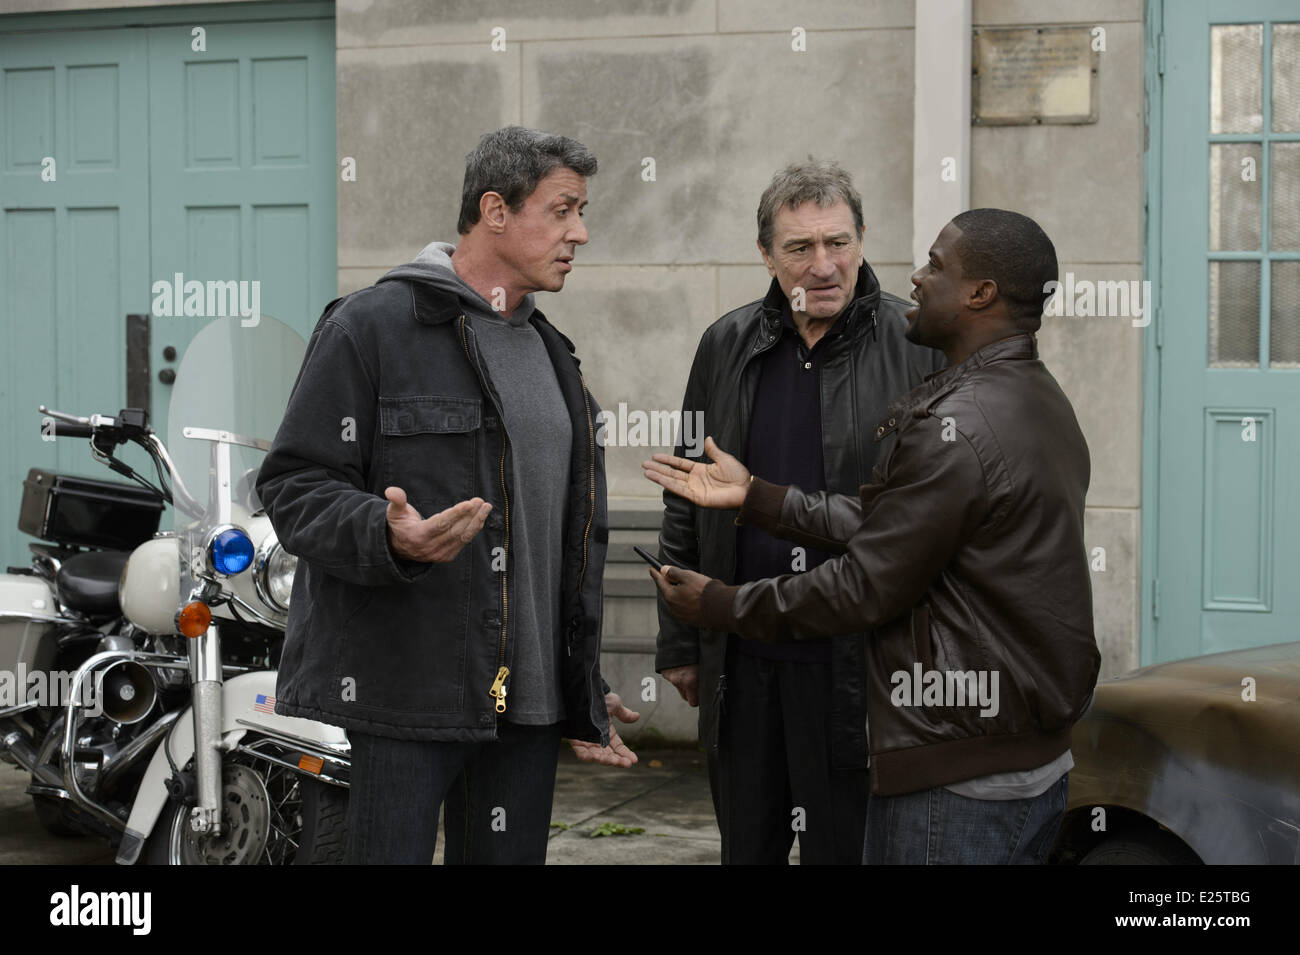 Sylvester Stallone, Robert de Niro, Kevin Hart in the film GRUDGE MATCH  Where: United States When: 05 Feb 2013 - Stock Image